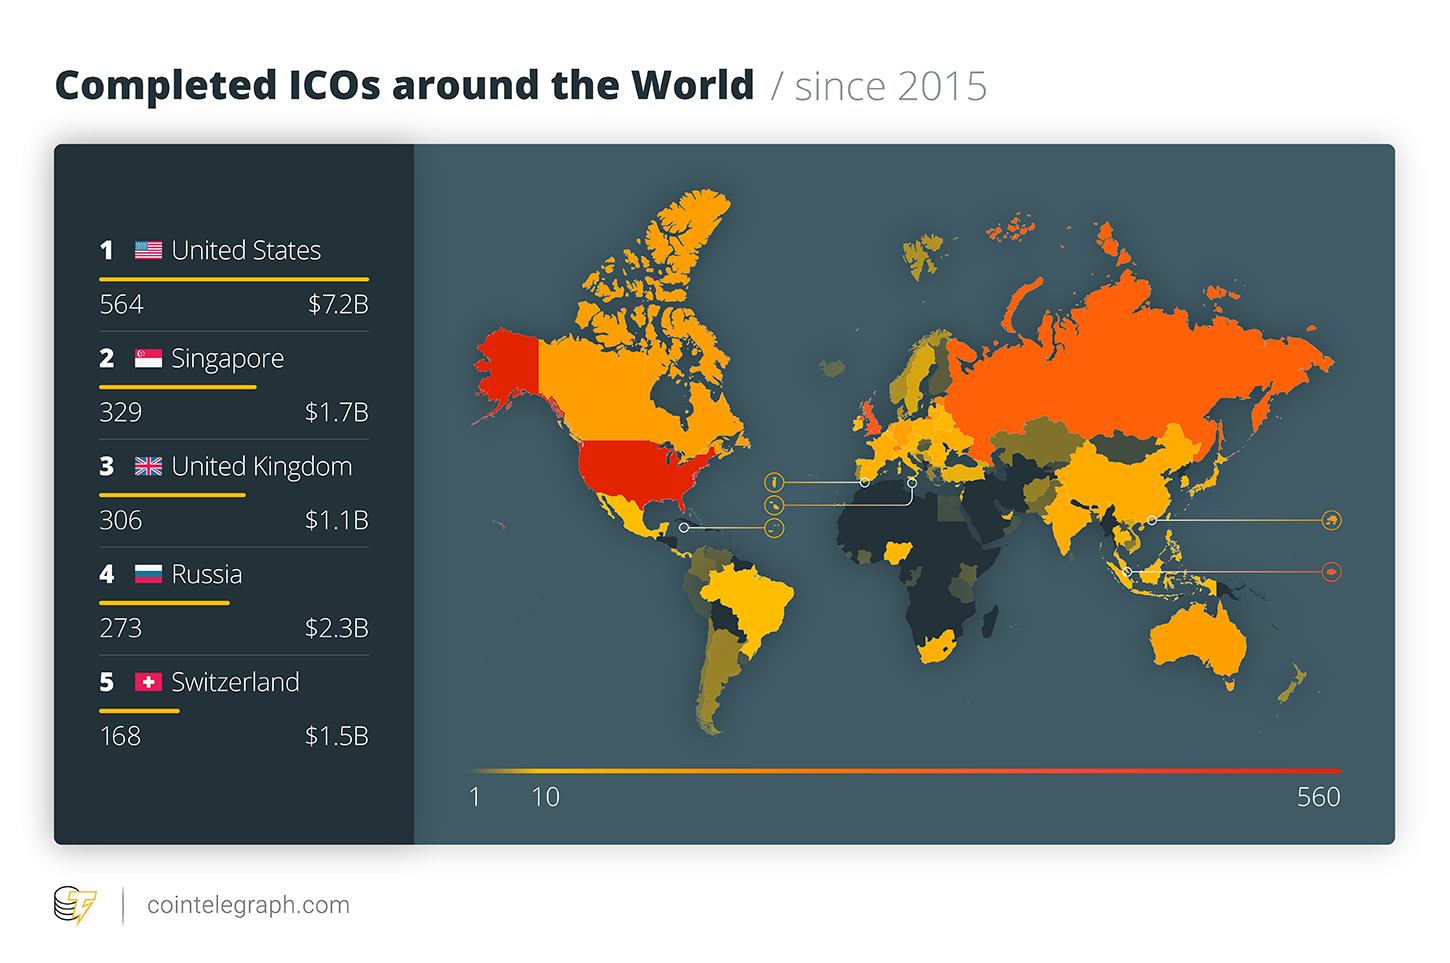 Completed ICOs around the World